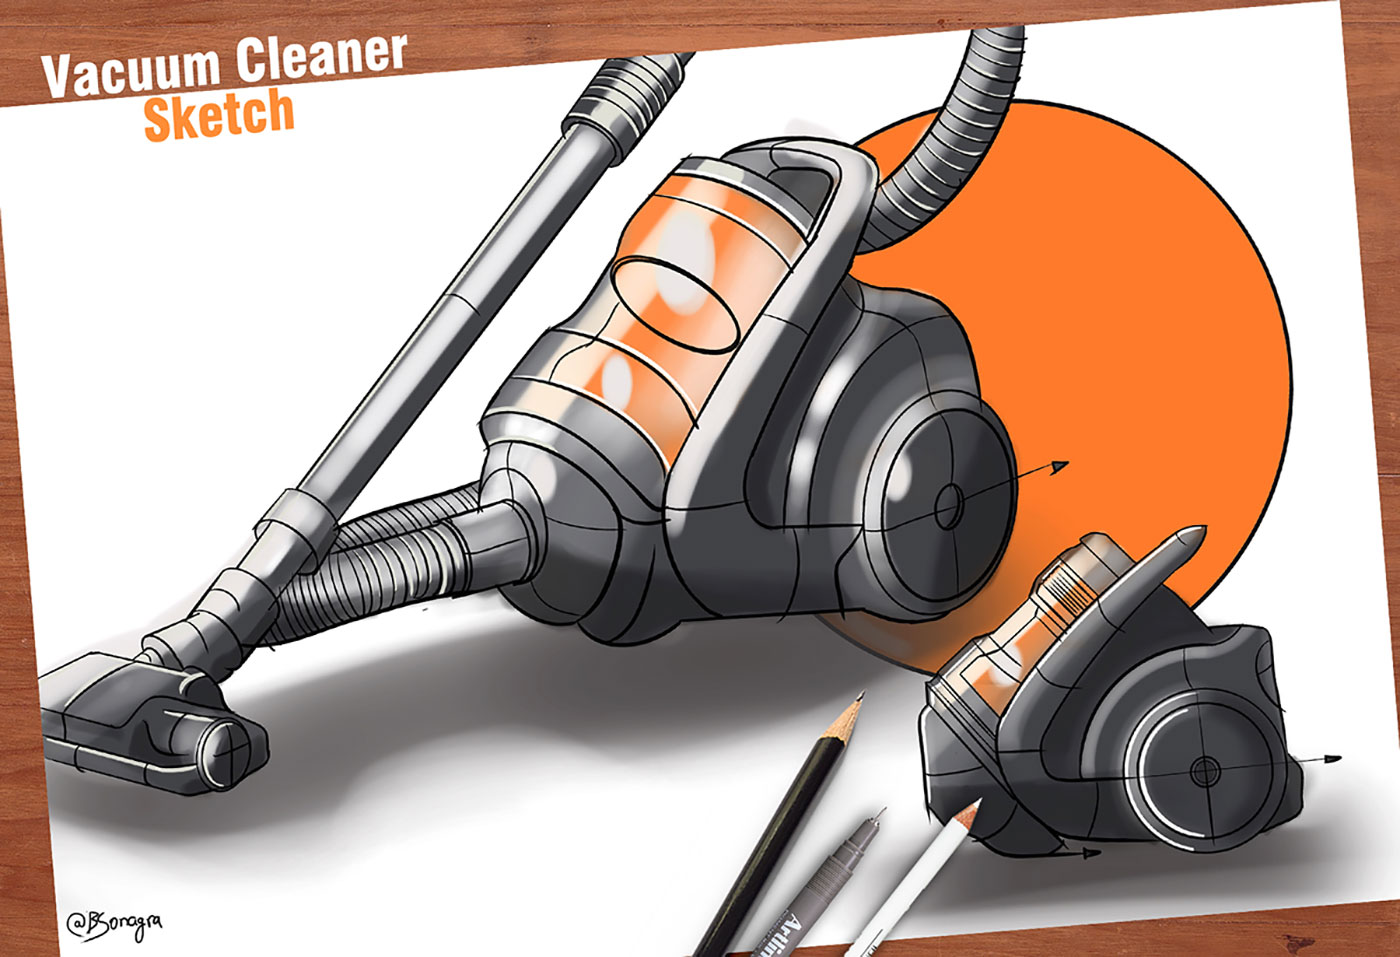 Drawing of a Vacuum Cleaner